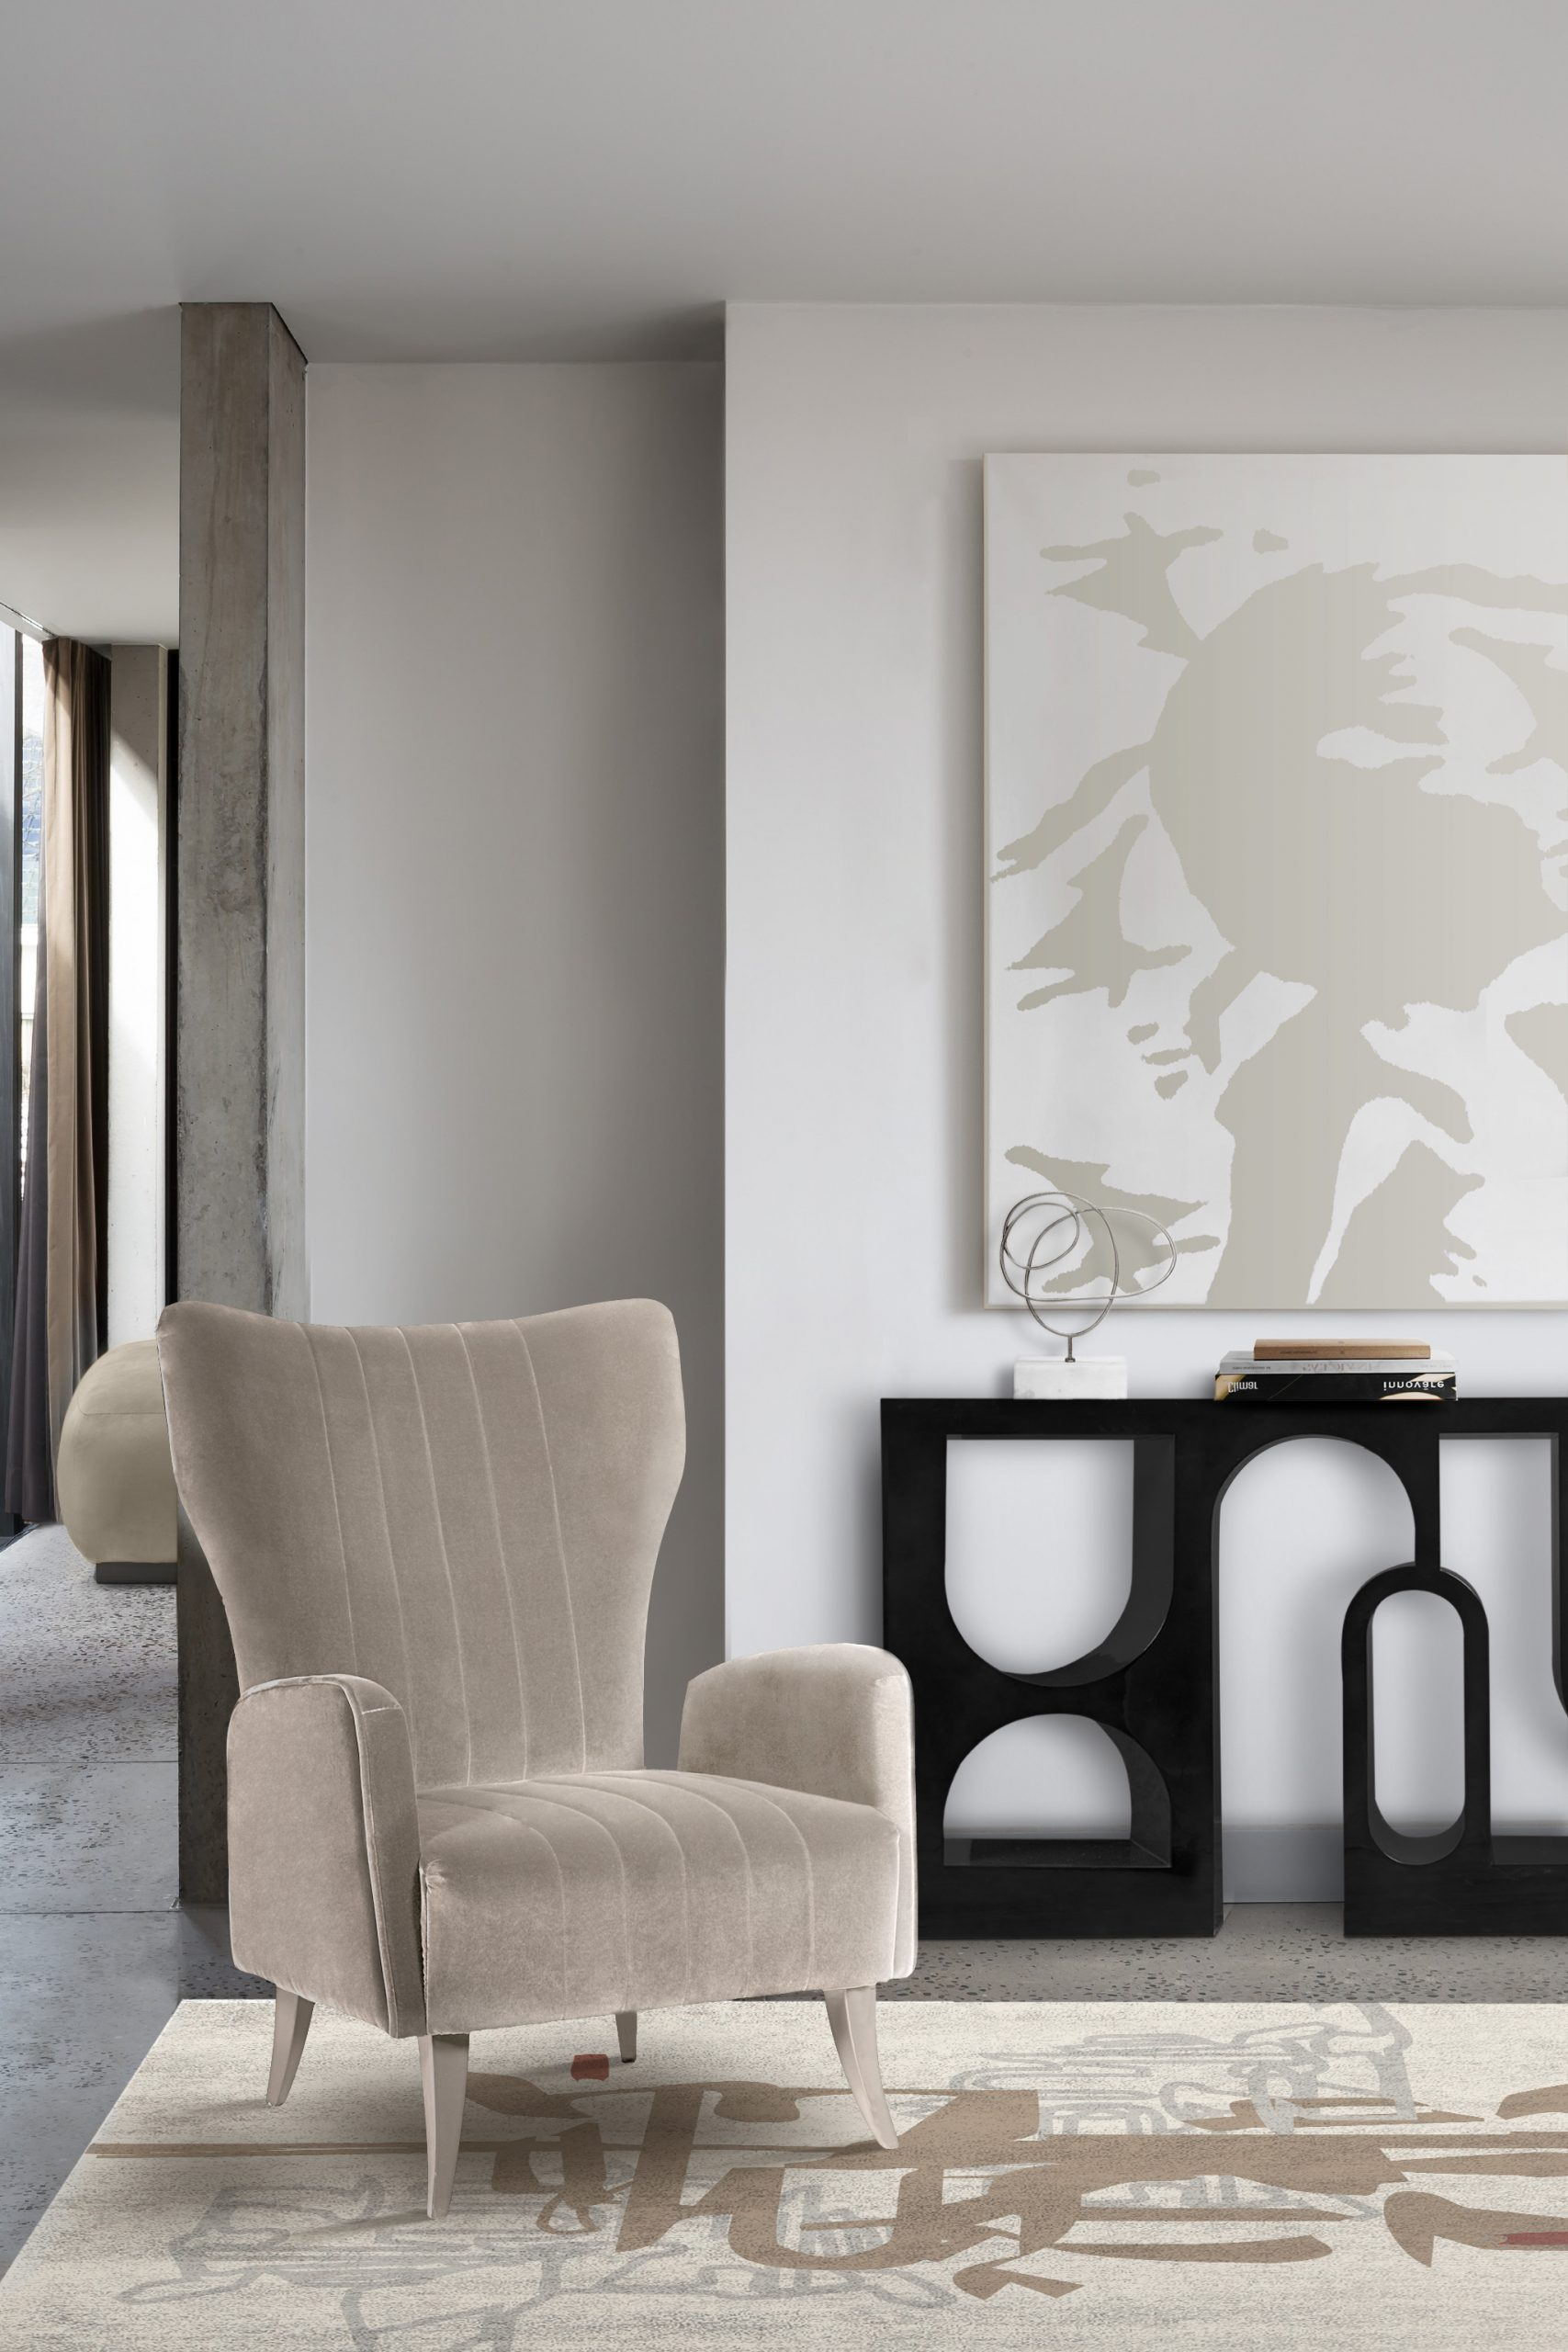 Monochromatic Look: How To Create Modern Rooms With One Colour monochromatic look Monochromatic Look: How To Create Modern Rooms With One Colour davis armchair colloseum console scaled